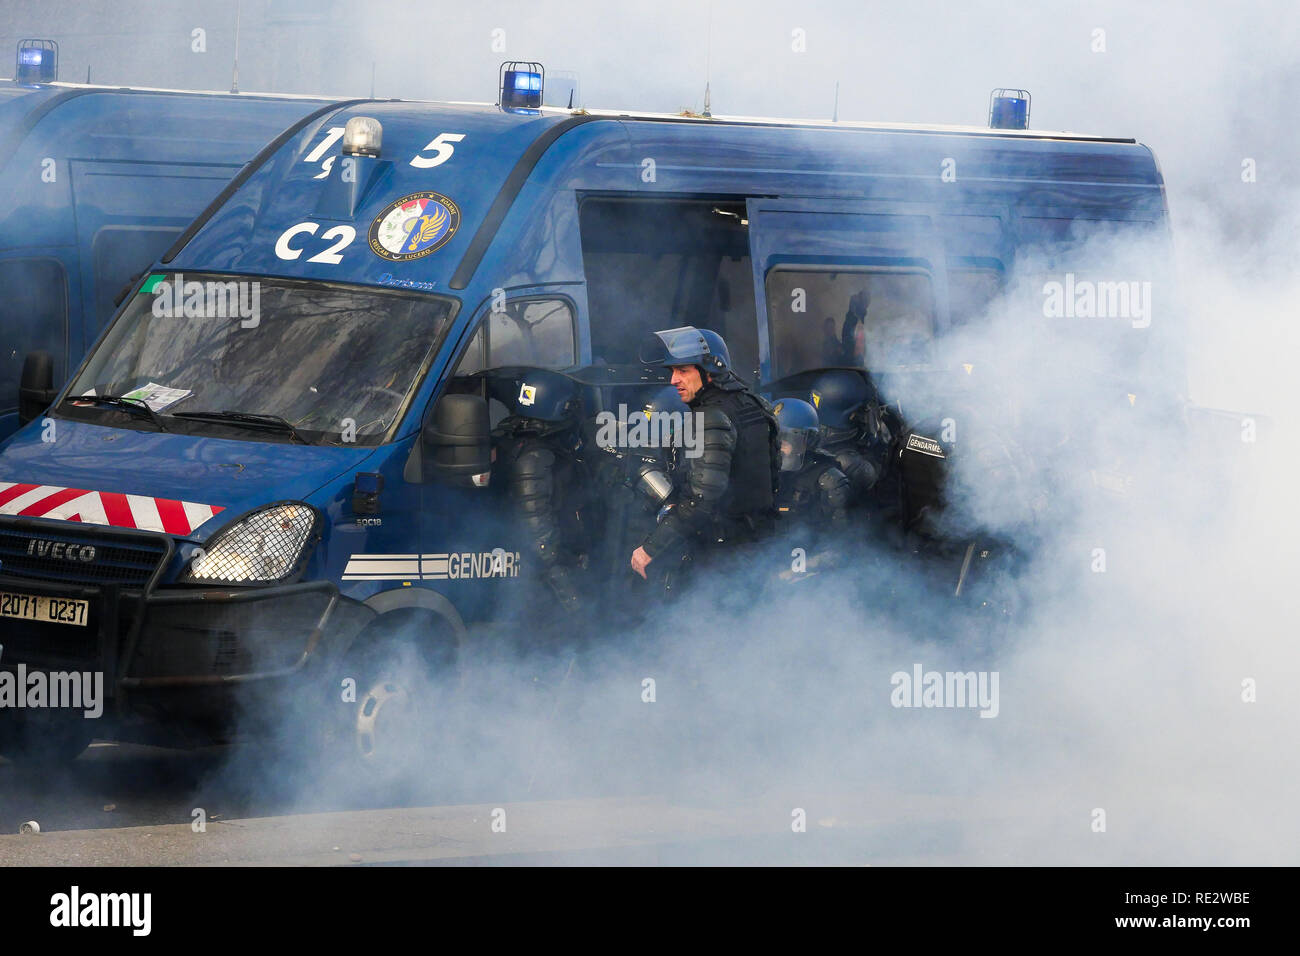 Lyon, France, January 19th 2019: Mobiles Gendarmes are seen in Lyon (Central-Eastern France) on January 19, 2019 as they try to resist to the attack of Yellow jackets aon the occasion of the 10th day of protest against french goverment reform projetct. Credit Photo: Serge Mouraret/Alamy Live News - Stock Image